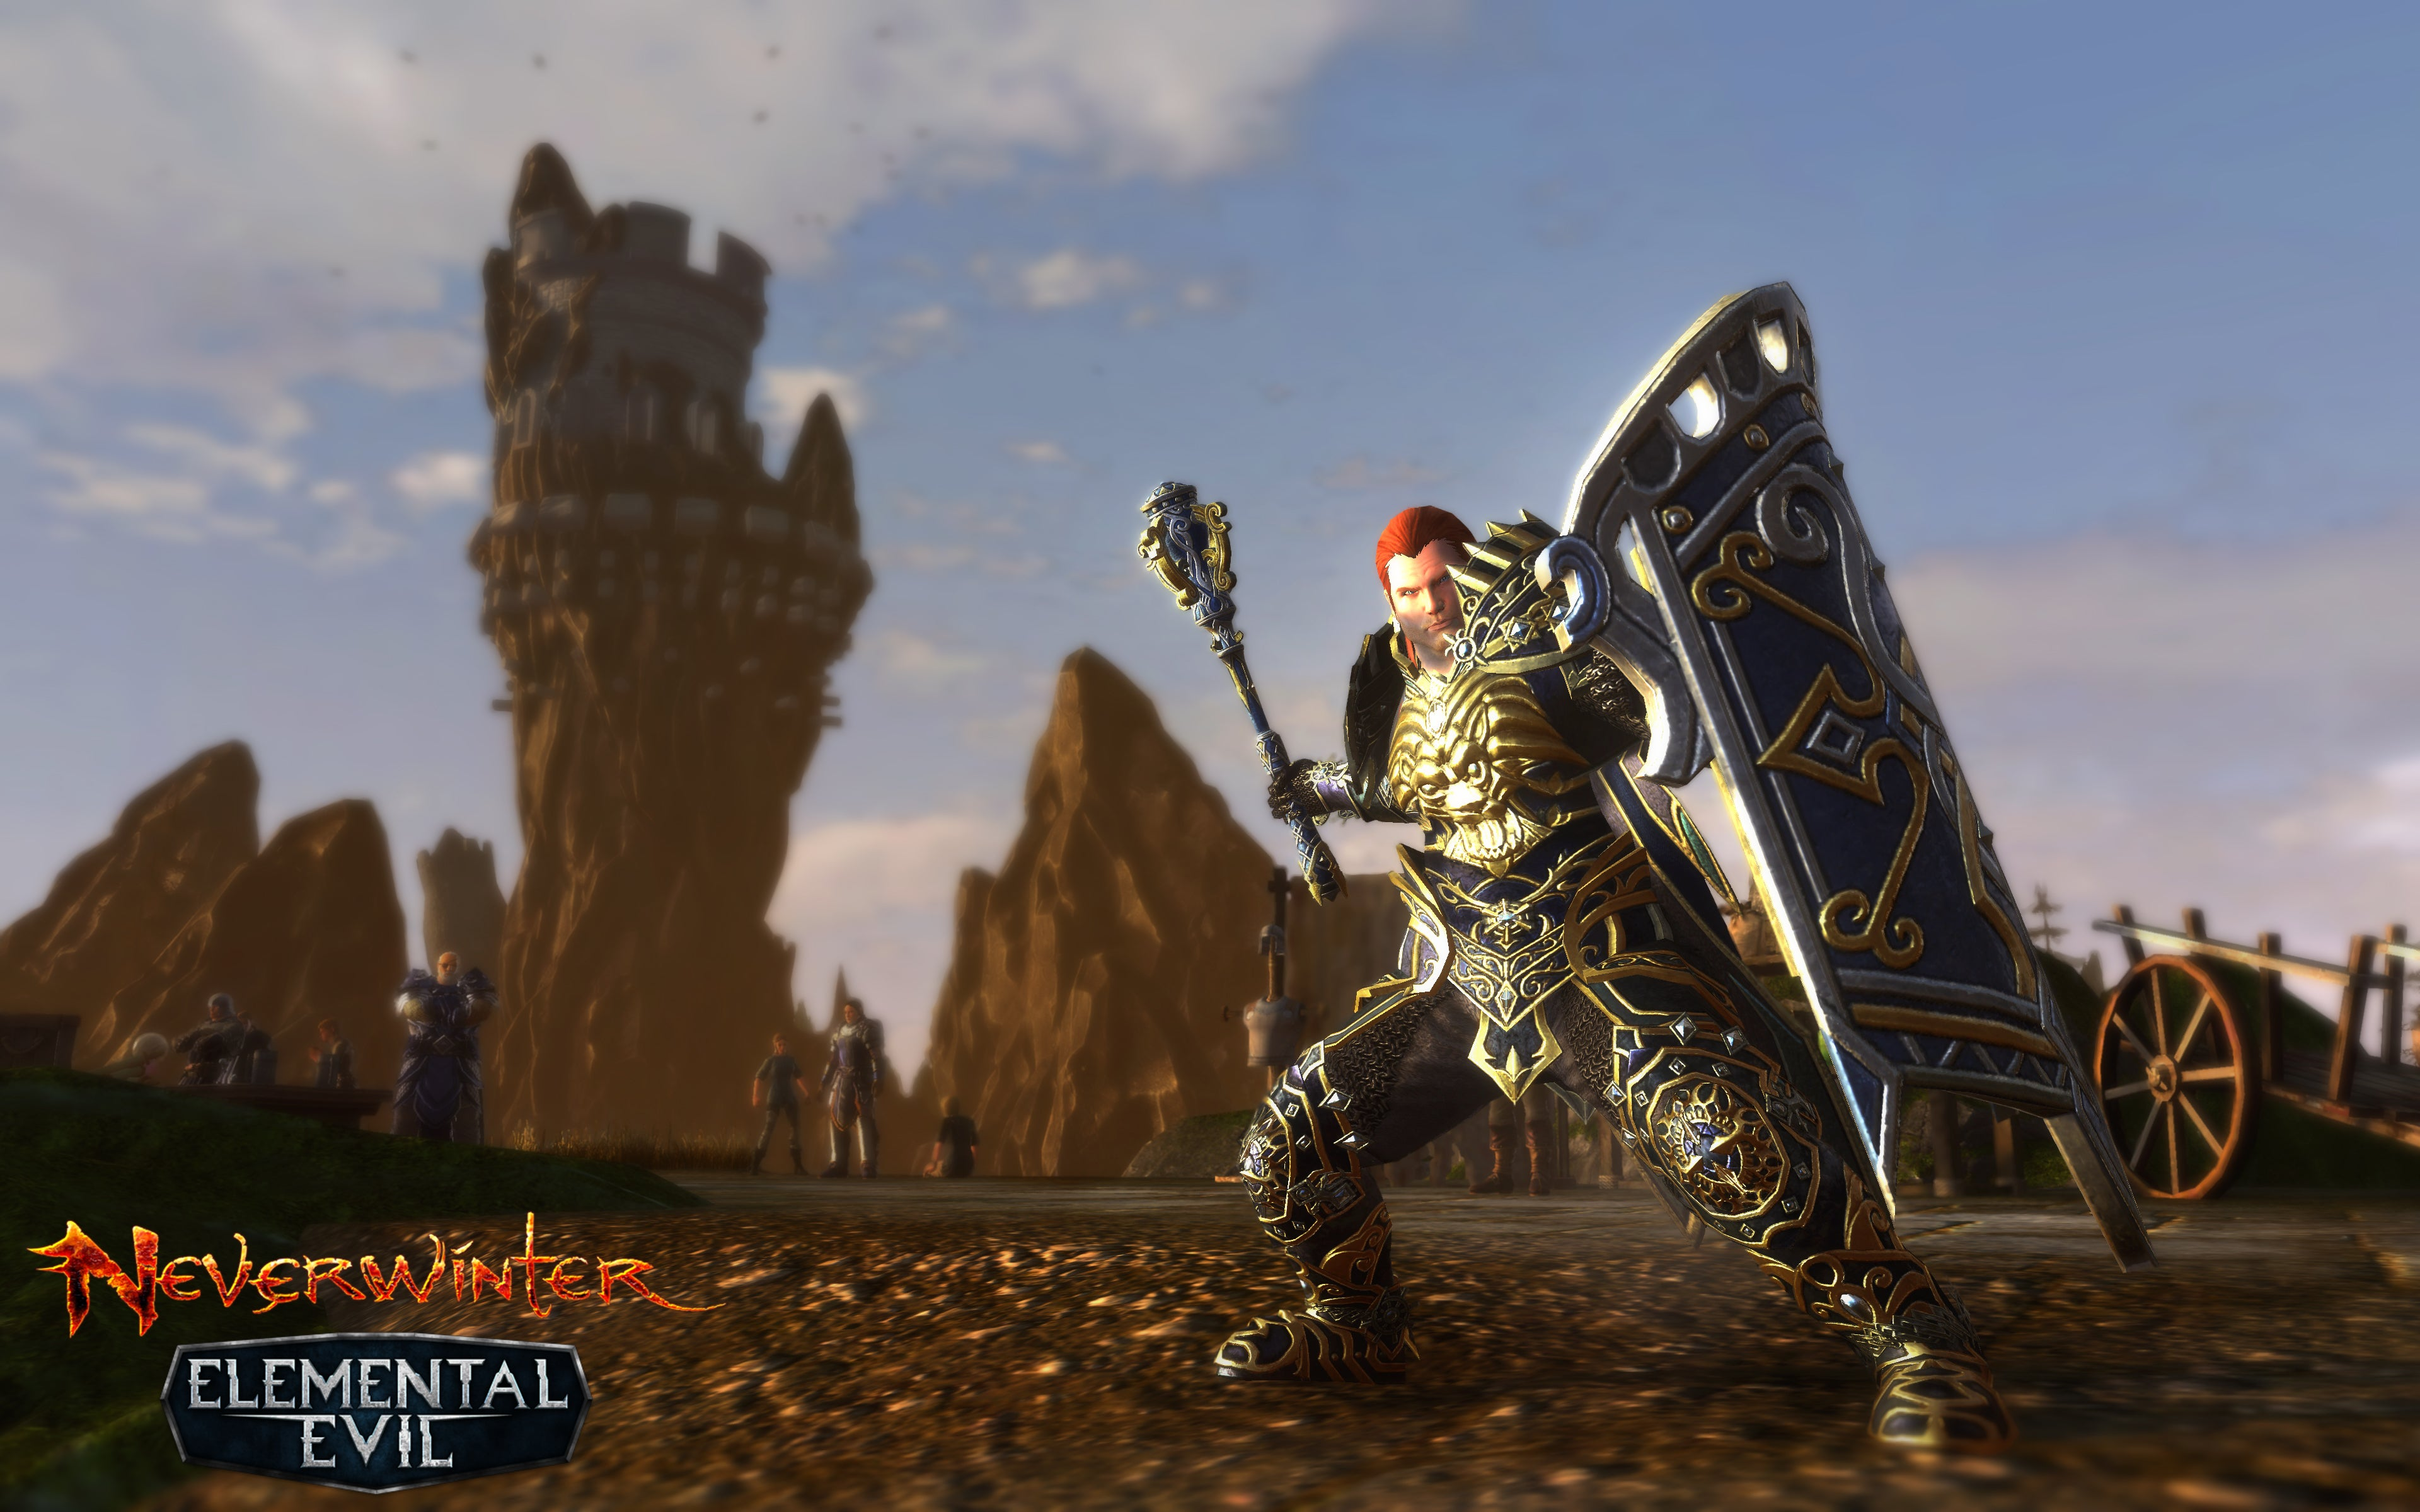 Dungeons & Dragons Brings Fresh Elemental Evil To MMO And Tabletop